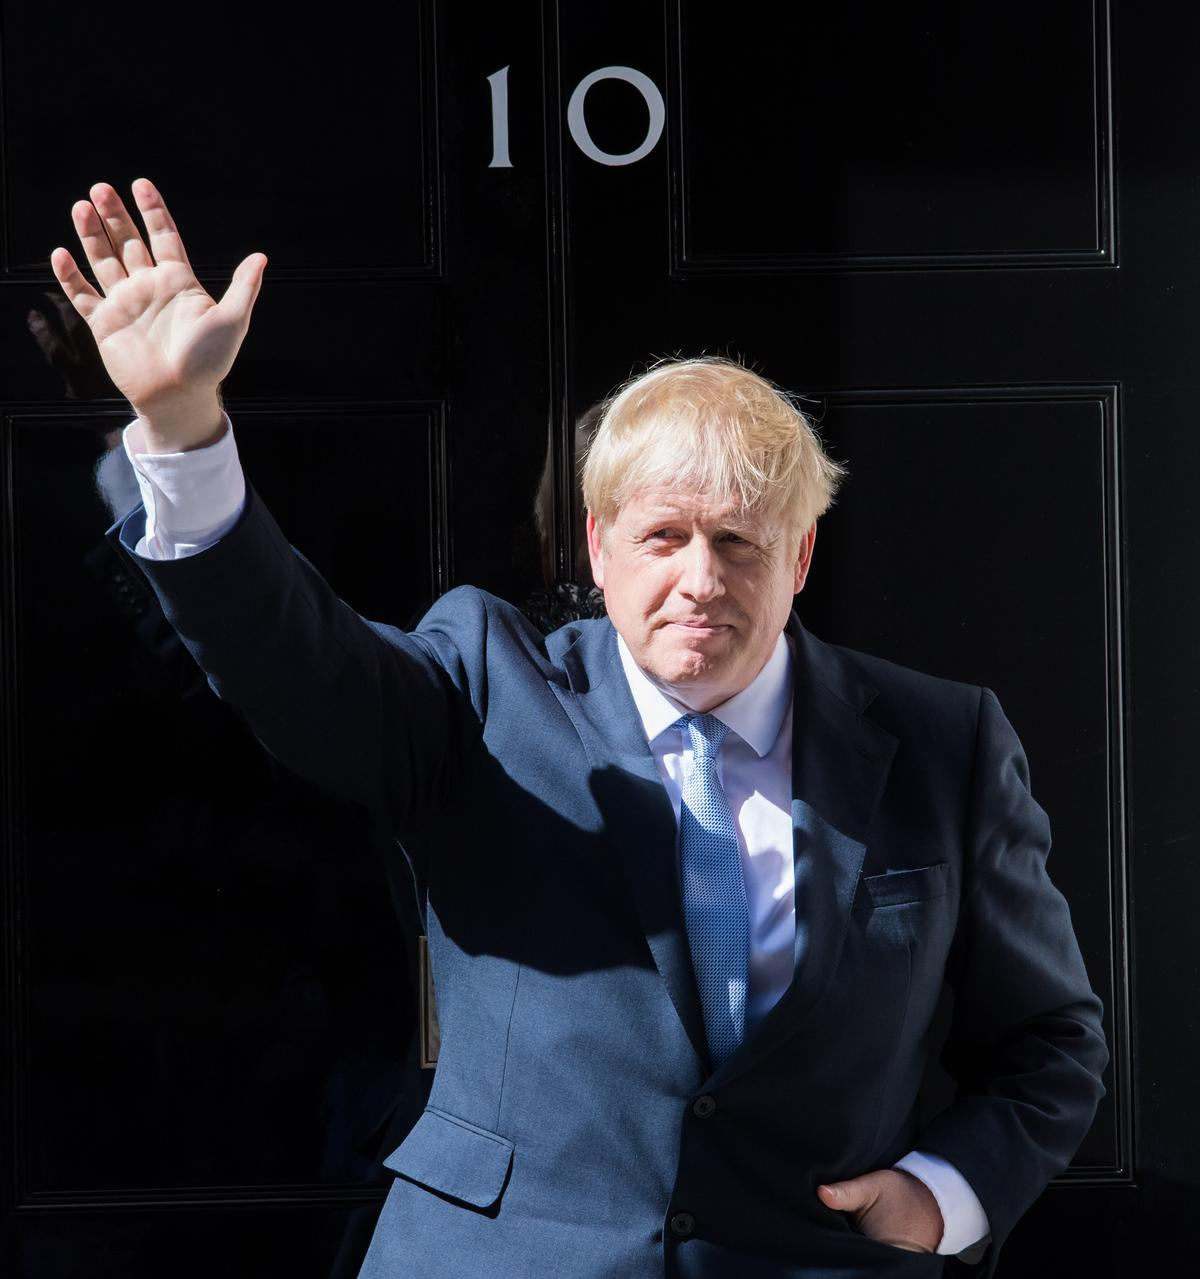 Johnson became Prime Minister on 24 July